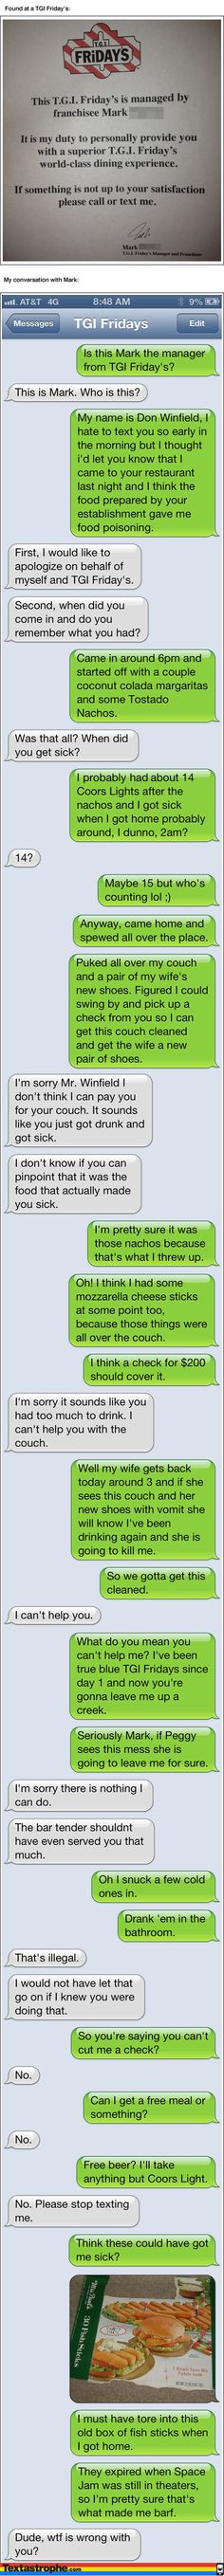 Textastrophe: TGI Friday's text, lol!! 14?